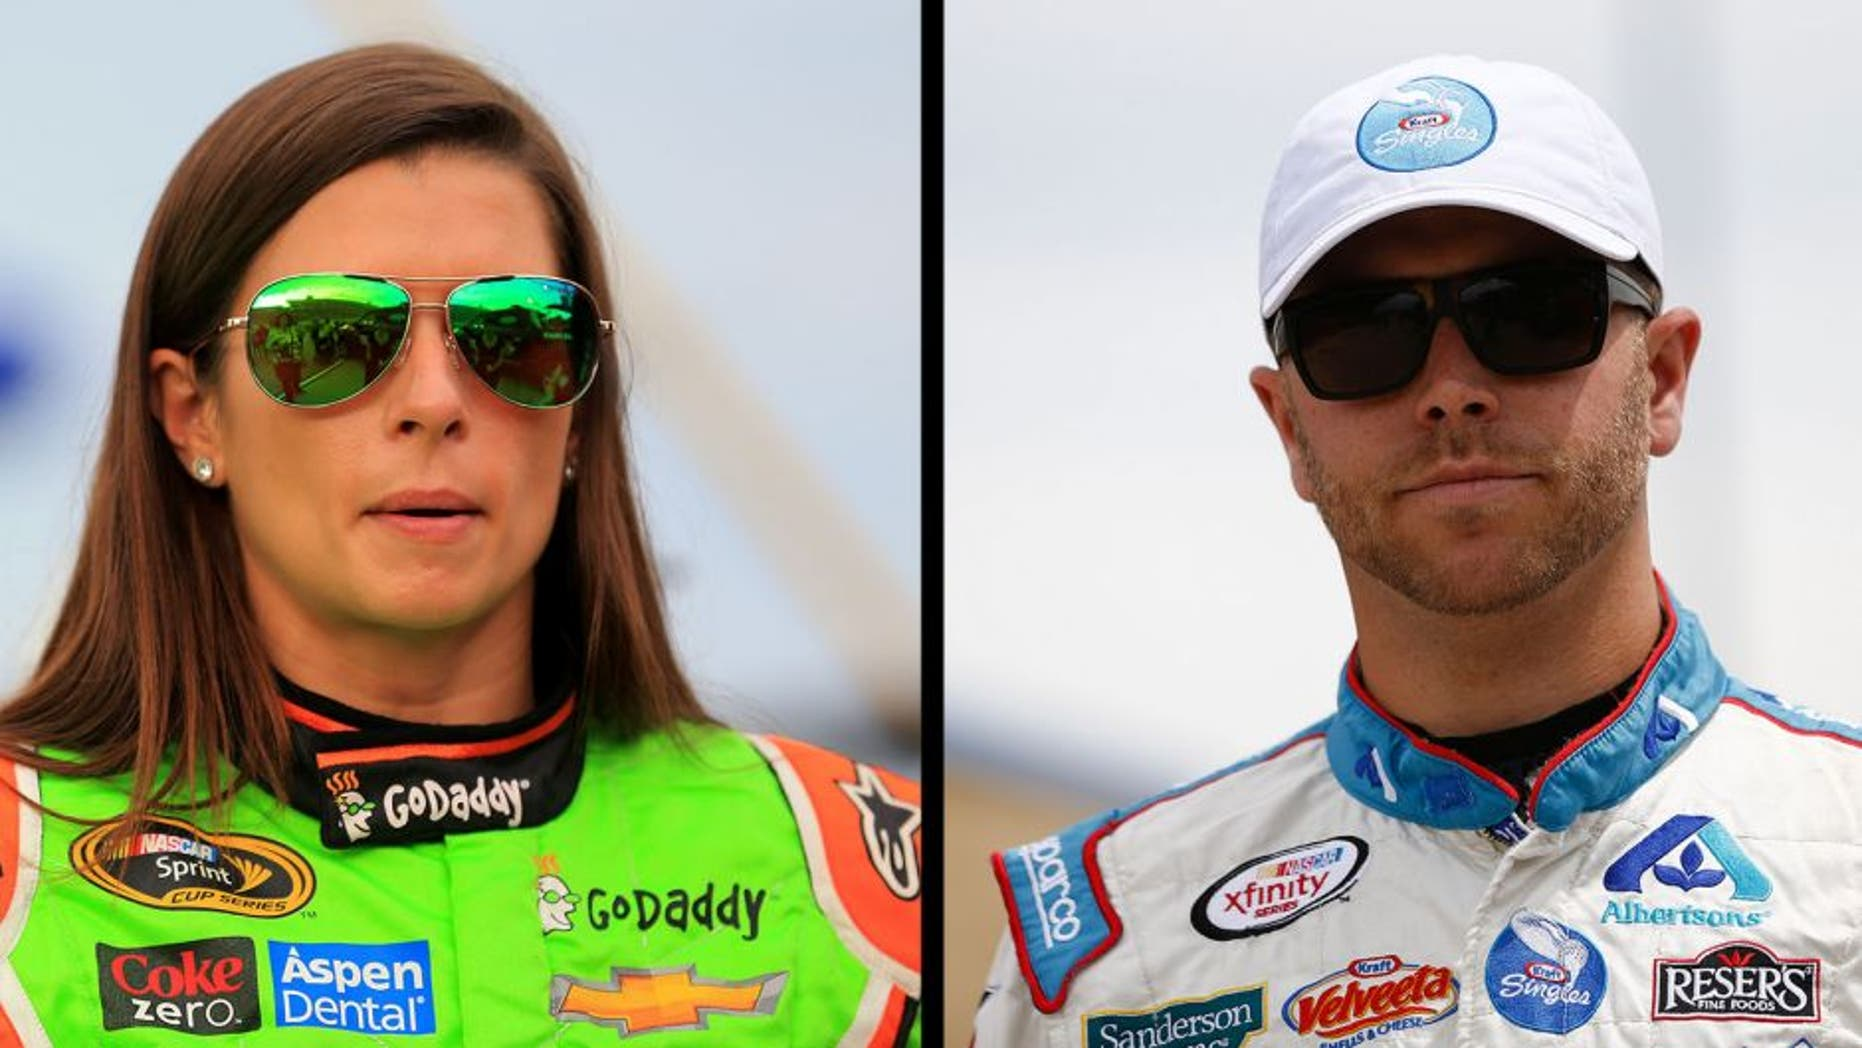 SPARTA, KY - JULY 11: Danica Patrick, driver of the #10 GoDaddy Chevrolet, takes part in pre-race ceremonies for the NASCAR Sprint Cup Series Quaker State 400 presented by Advance Auto Parts at Kentucky Speedway on July 11, 2015 in Sparta, Kentucky. (Photo by Daniel Shirey/Getty Images)